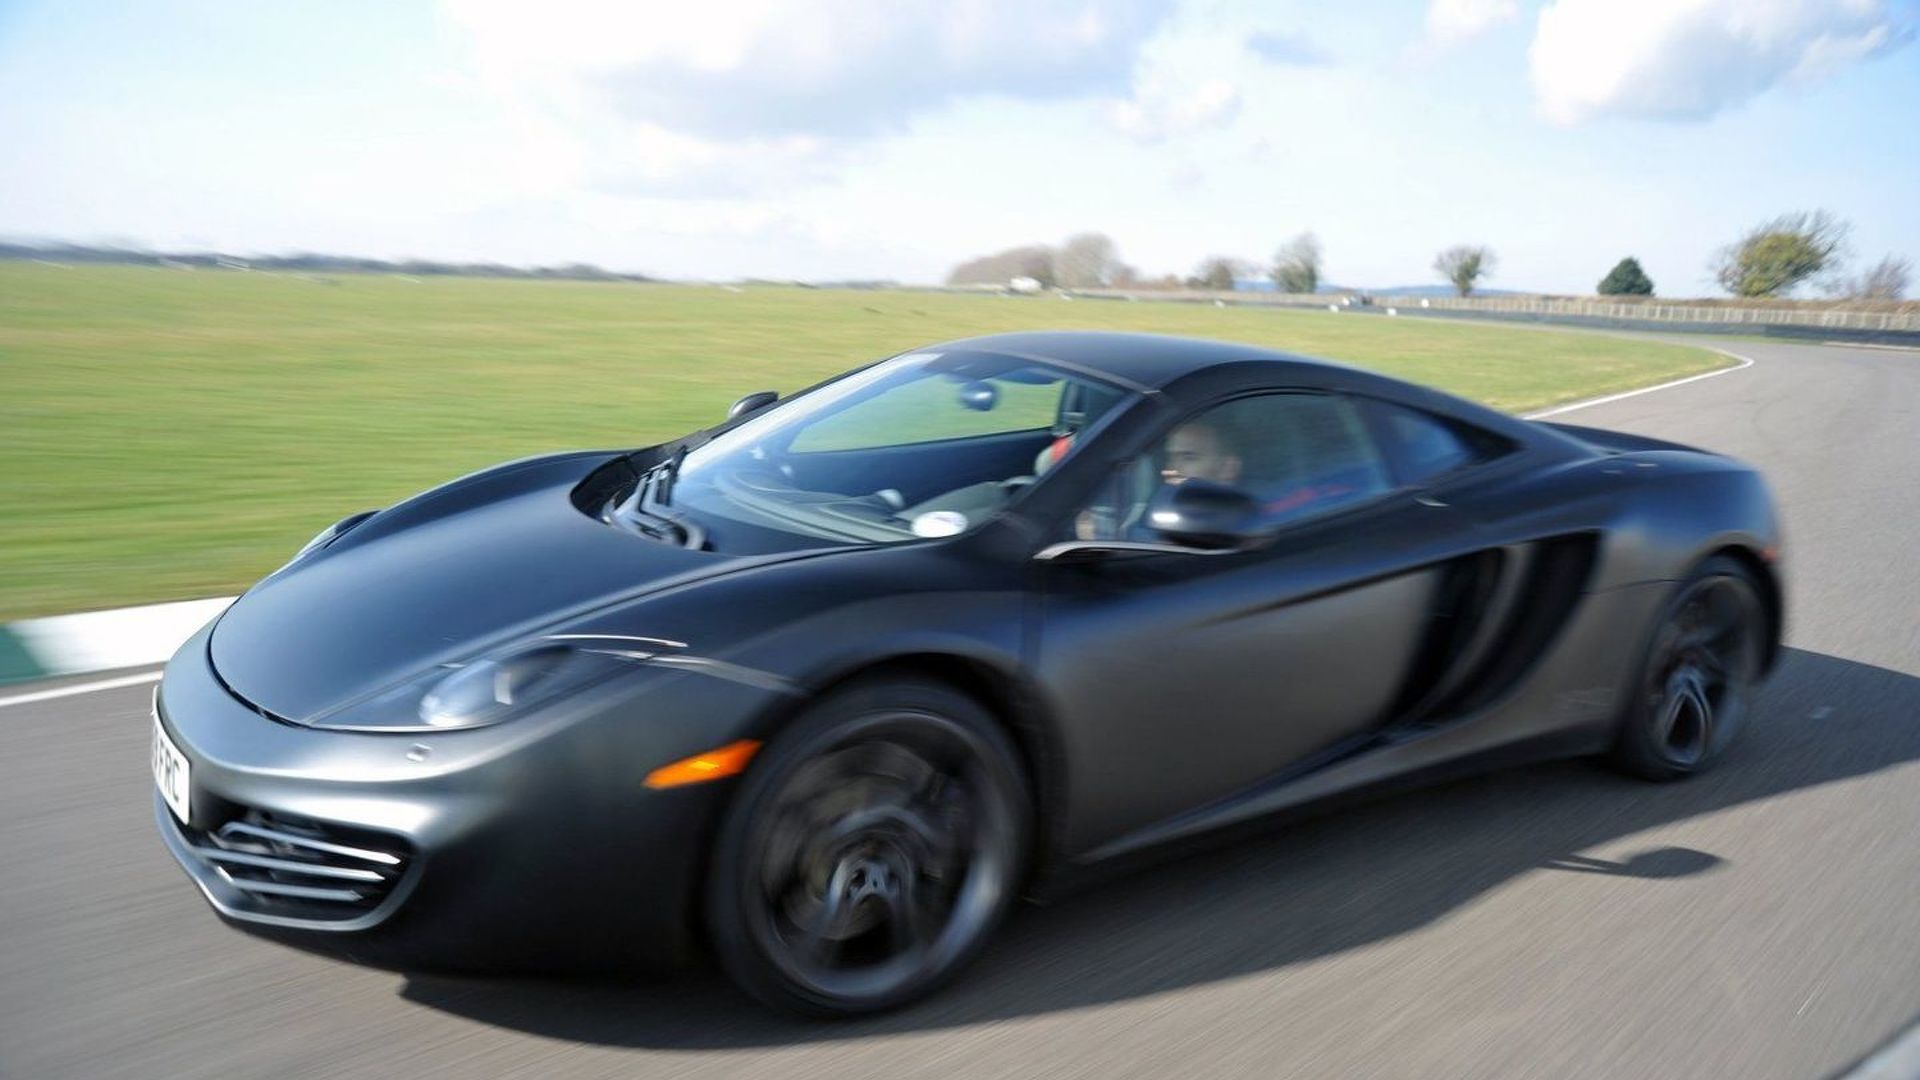 McLaren confirms 35 dealers in 19 countries by 2011